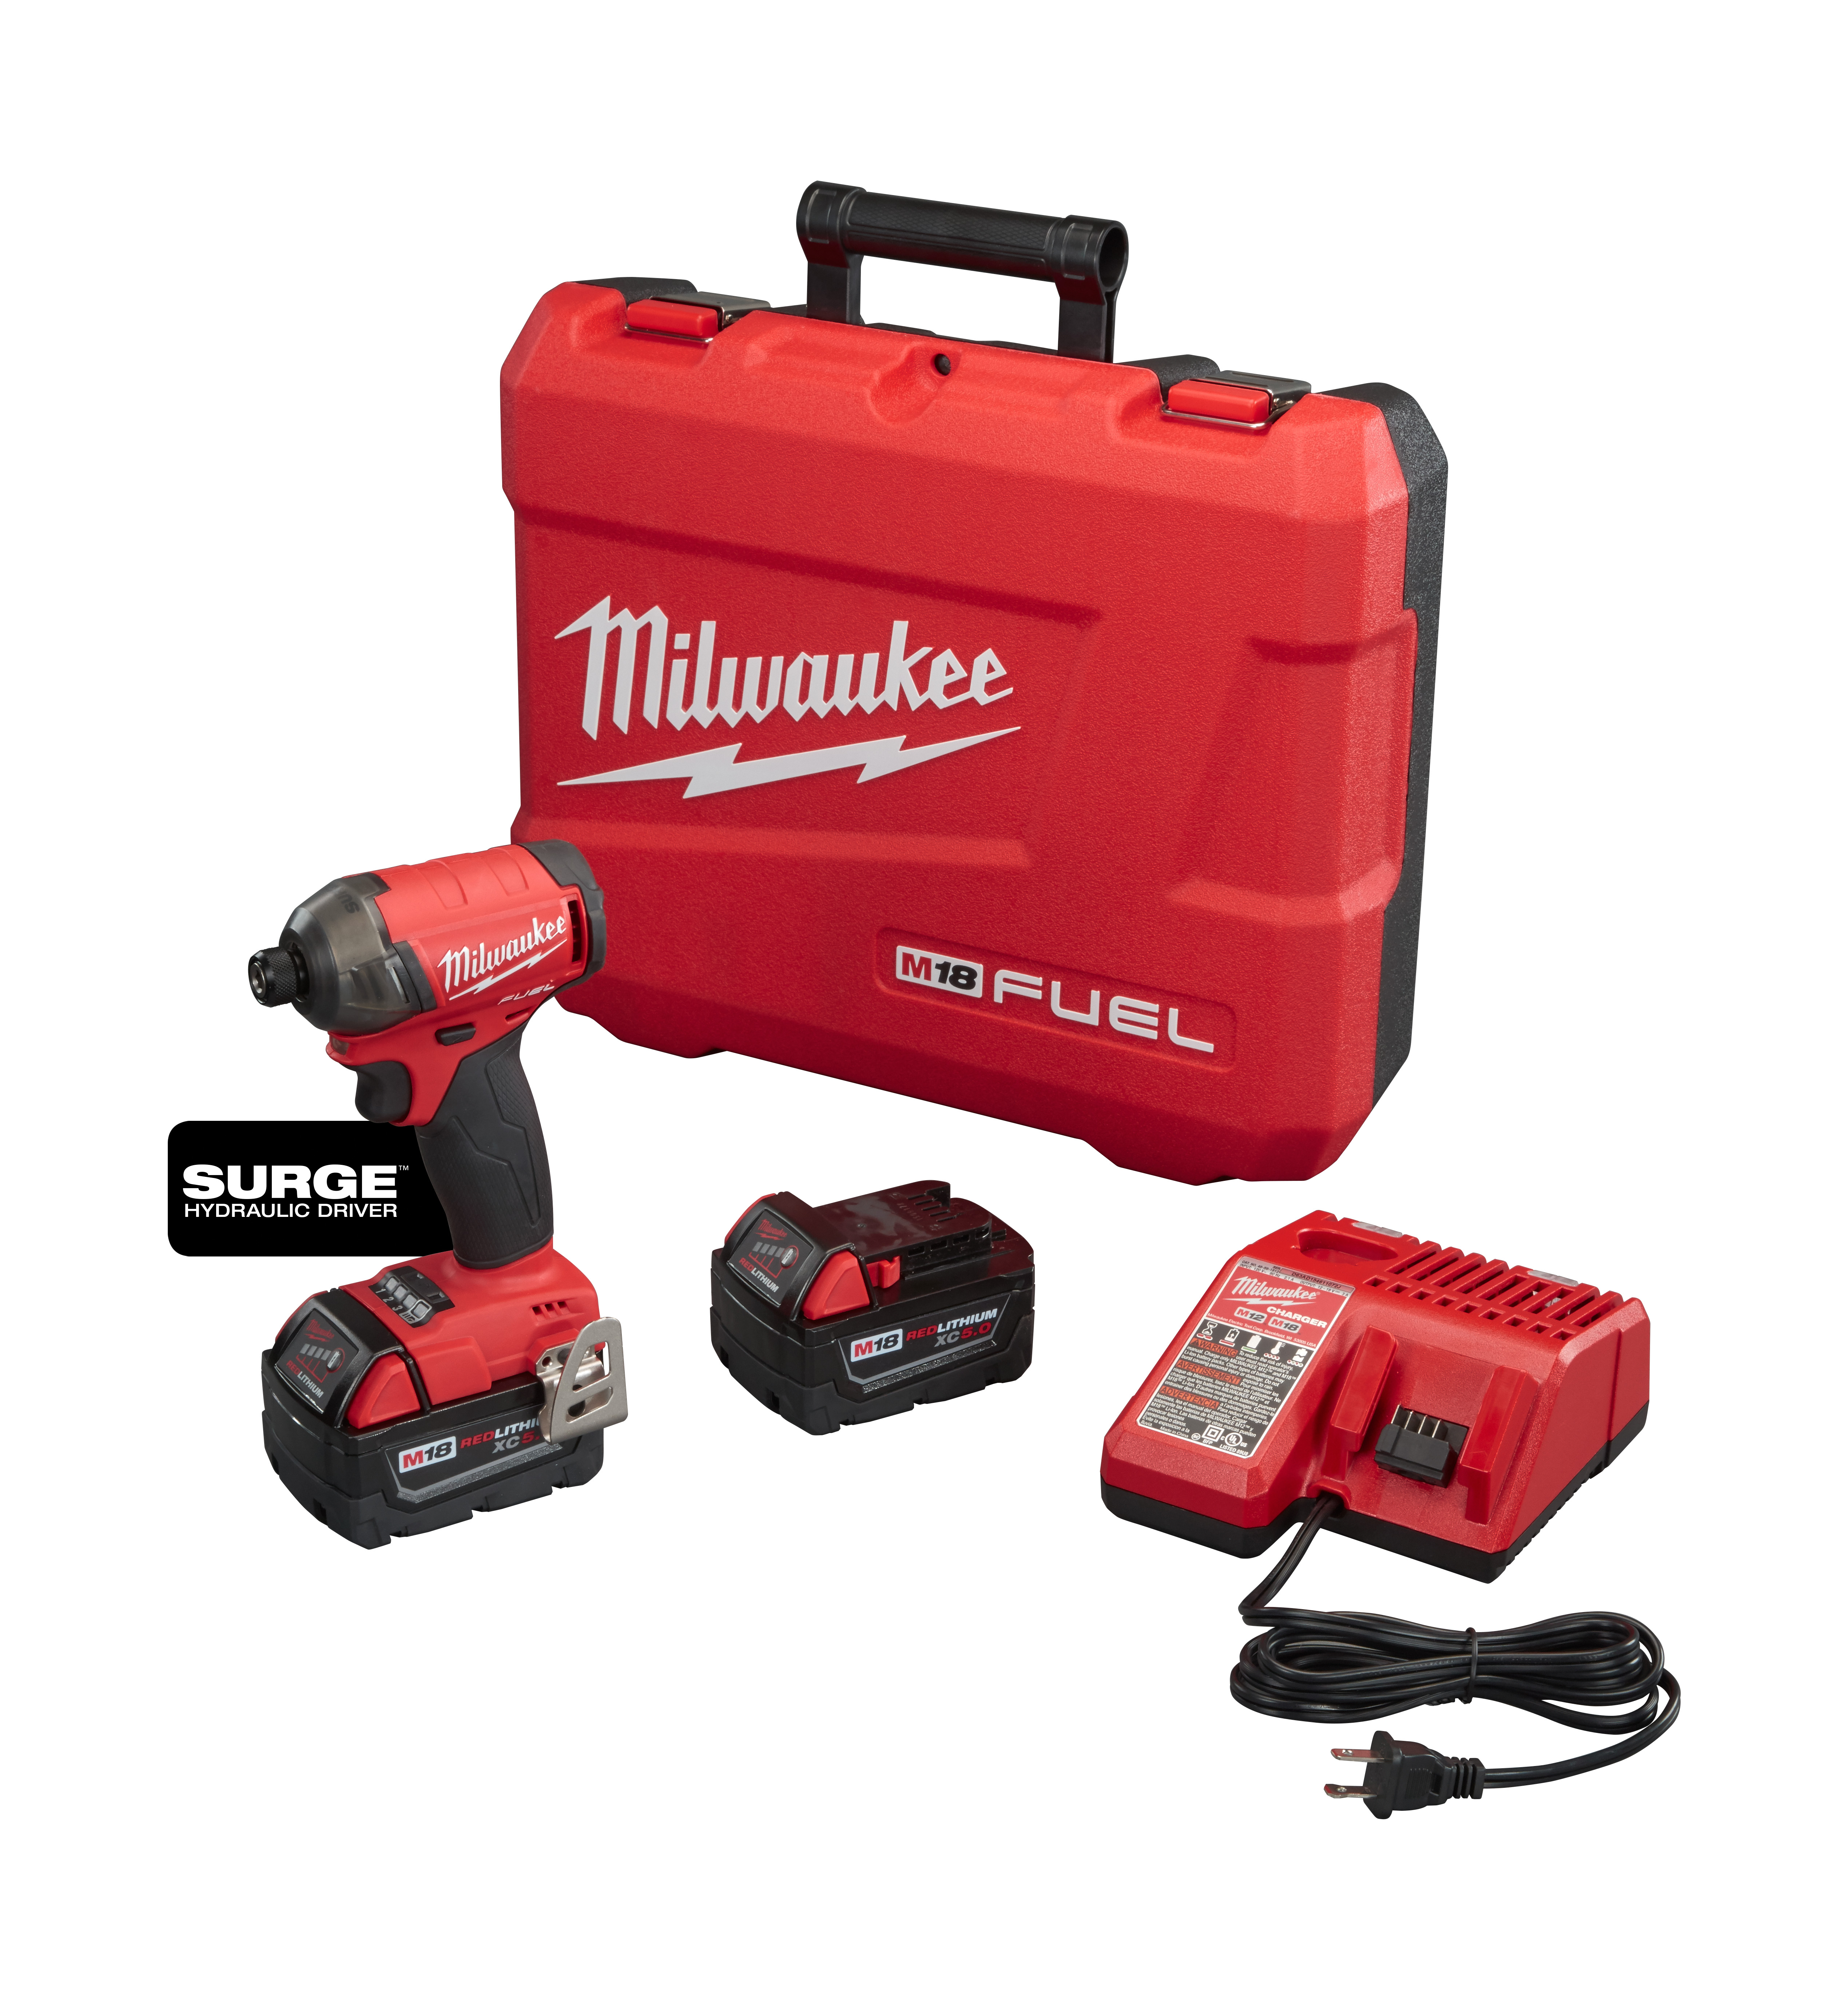 Milwaukee® M18™ FUEL™ 2760-22 SURGE™ Cordless Impact Driver Kit, 1/4 in Hex/Straight Drive, 4000 bpm, 450 in-lb Torque, 18 VDC, 5 in OAL